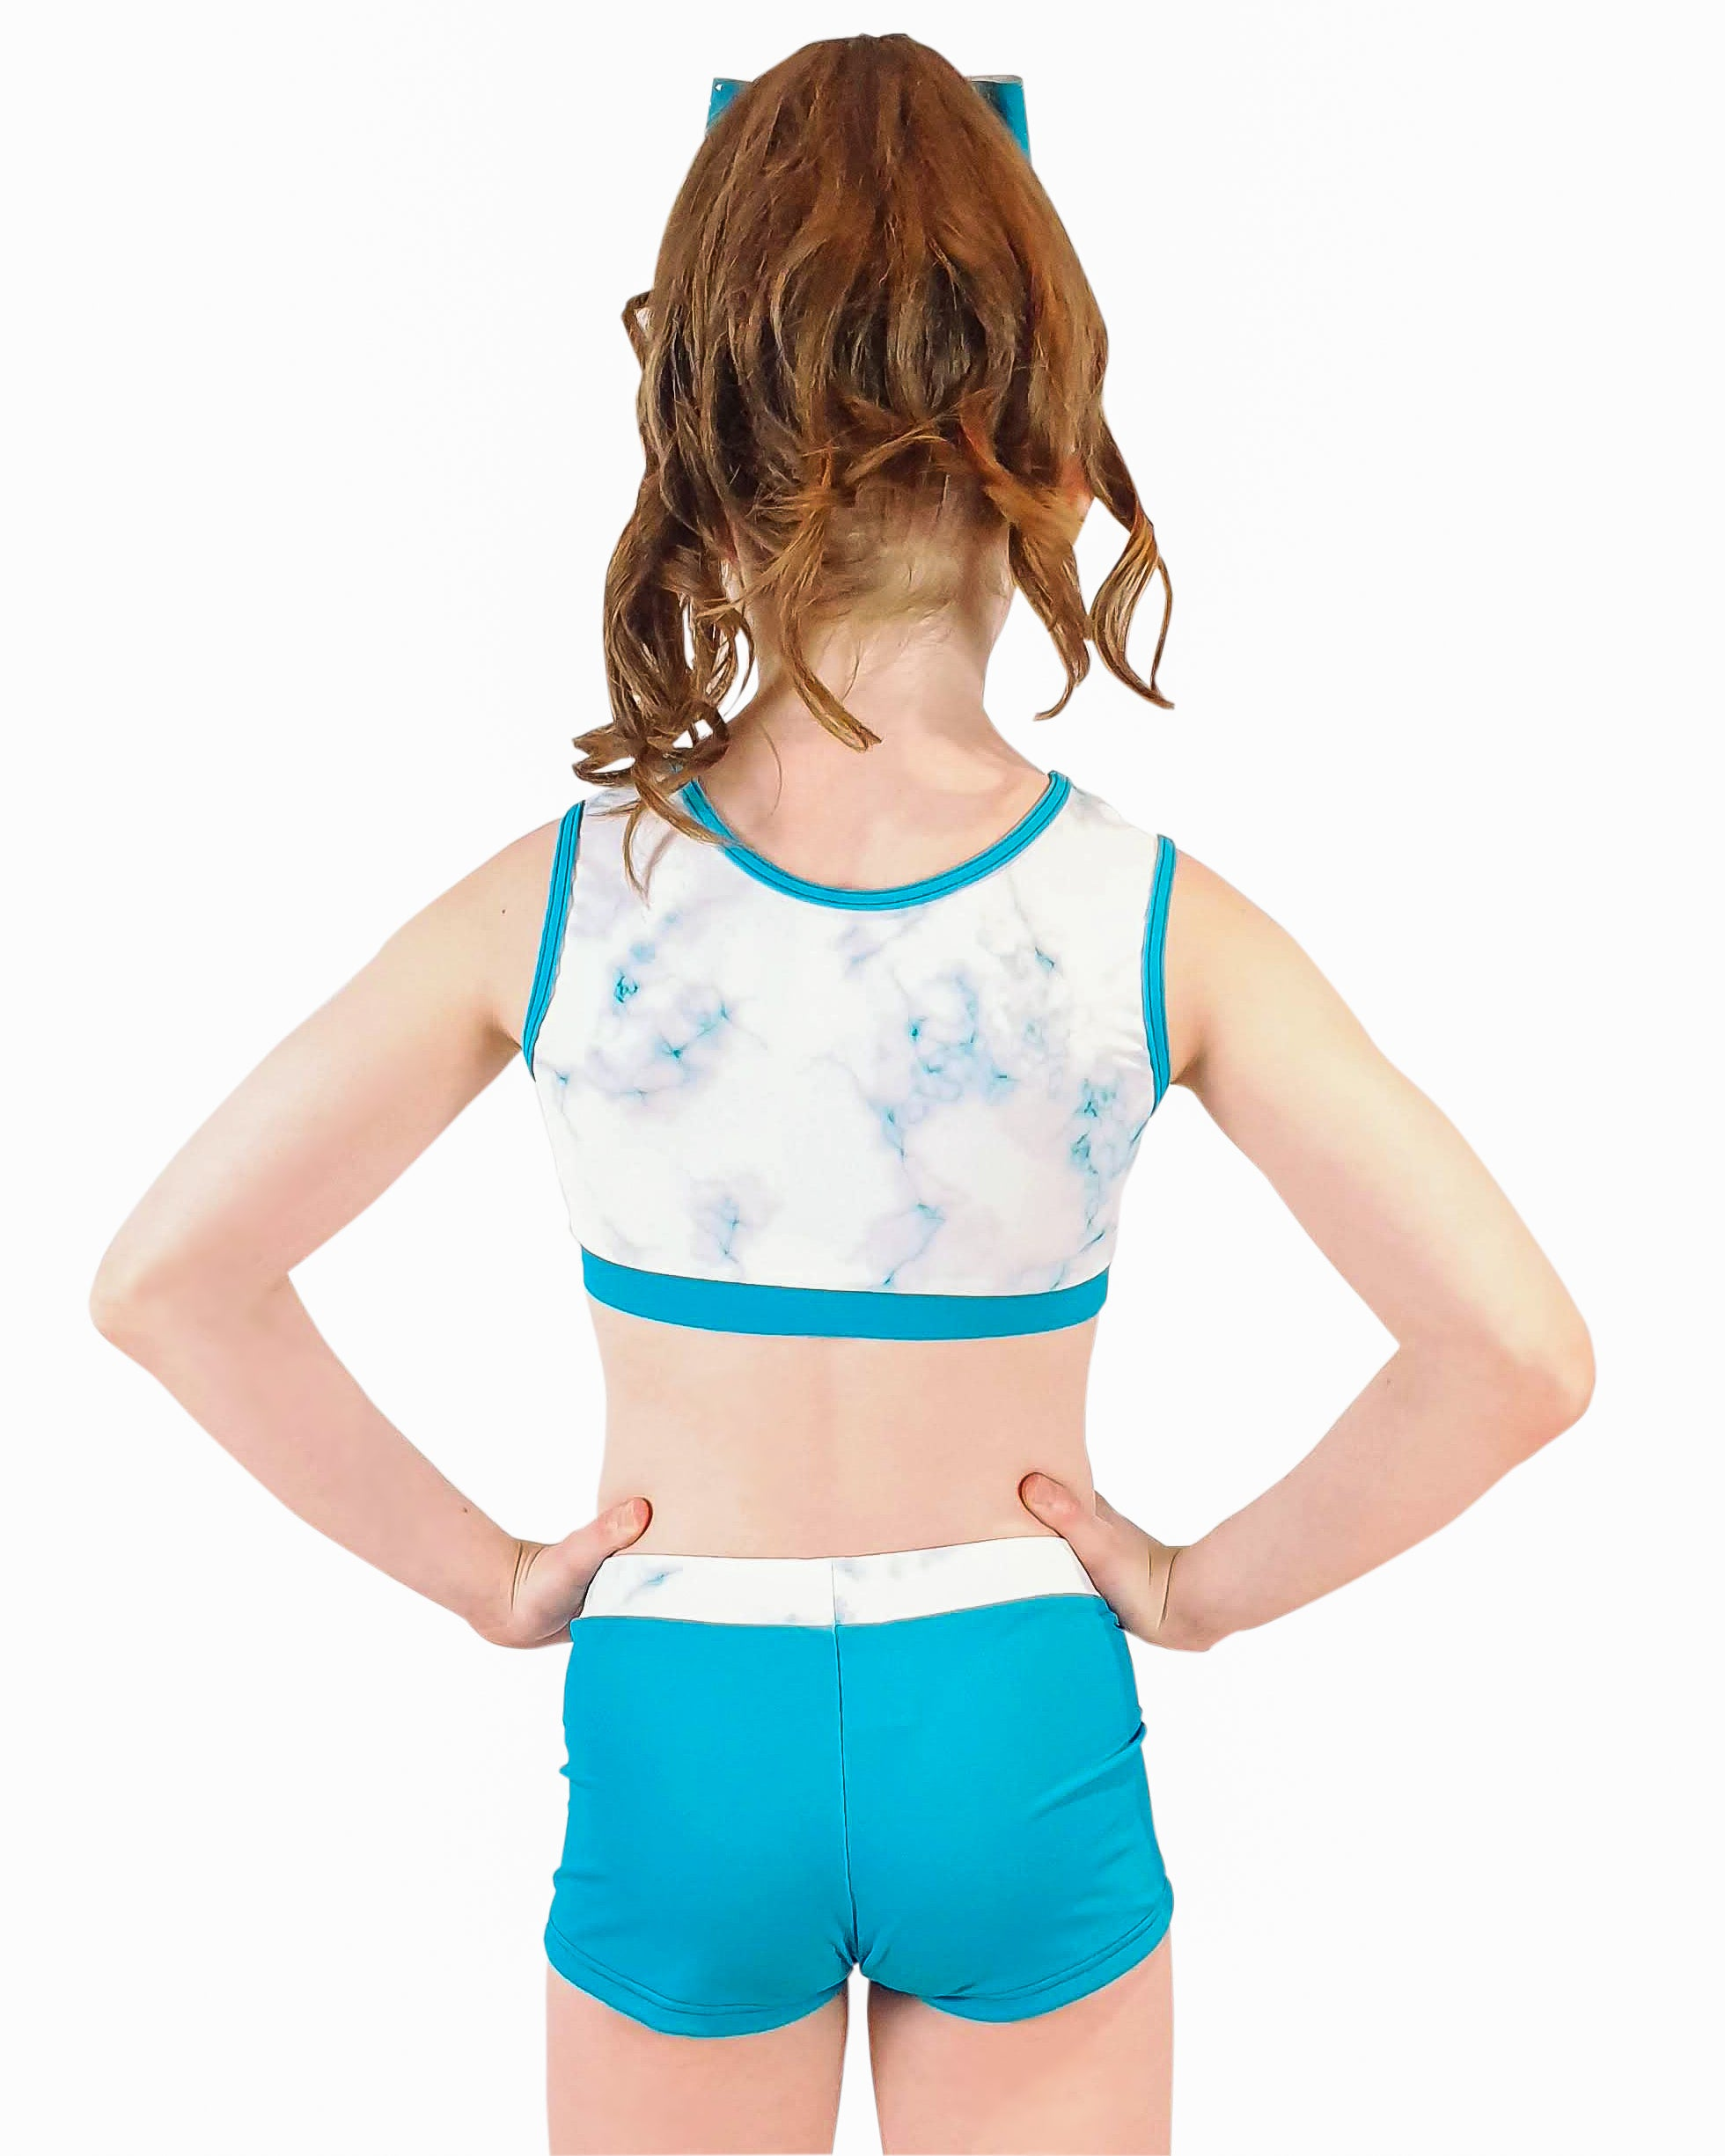 EUPHORIA TURQUOISE CROP TOP SET Girls Gymnastics | Equip My Gym A